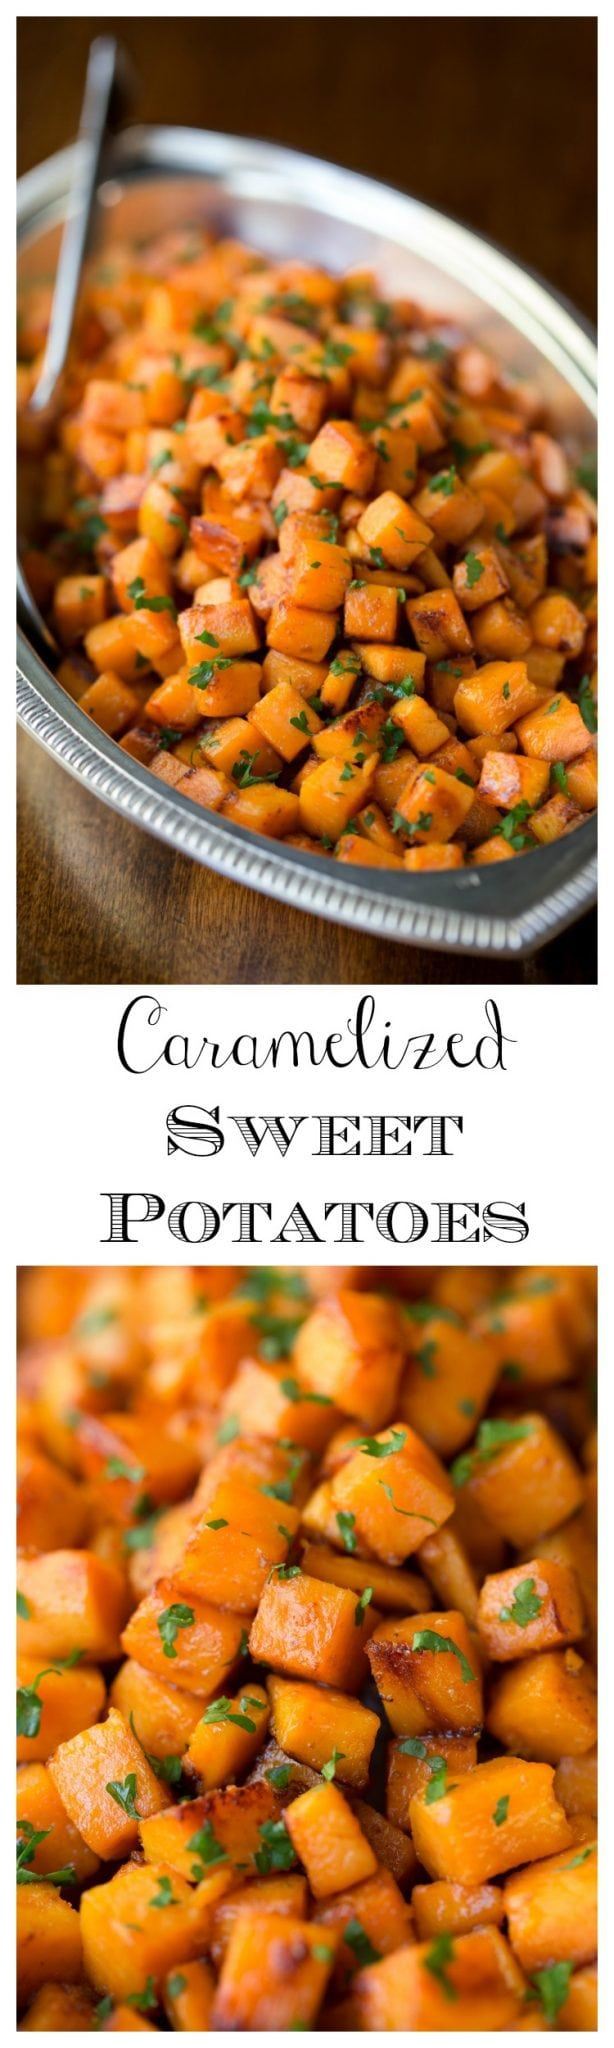 Super quick and easy, these Caramelized Sweet Potatoes are a healthy alternative to traditional, sticky, marshmallow recipes. And they taste like candy! https://thecafesucrefarine.com